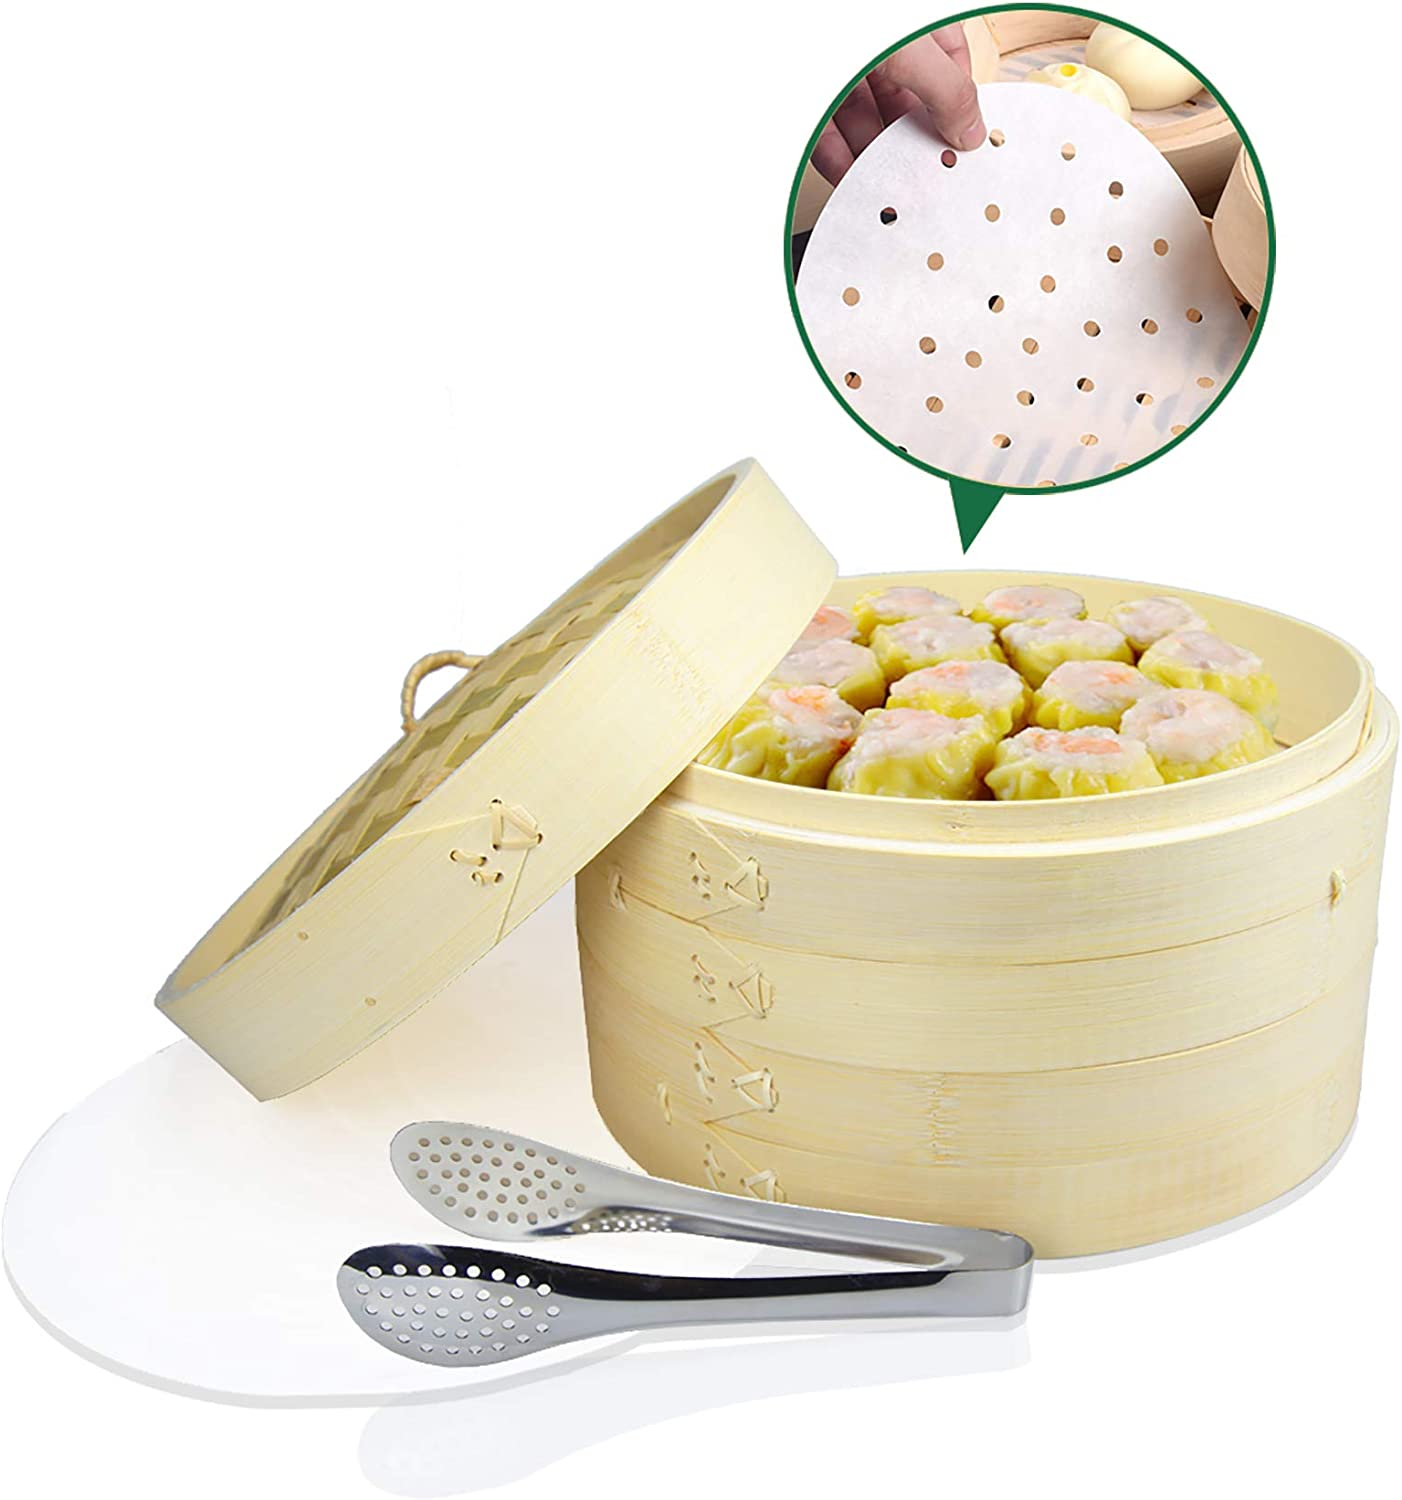 Bamboo Steamer Basket 10 Inch, DUU Dumpling Steamer with Lid, 2 Tier Food Steamer, Natural Bamboo Steamer for Cooking, Dim Sum, Steamed bread, Contains Food Tong & 20 Wax Steamer Liners